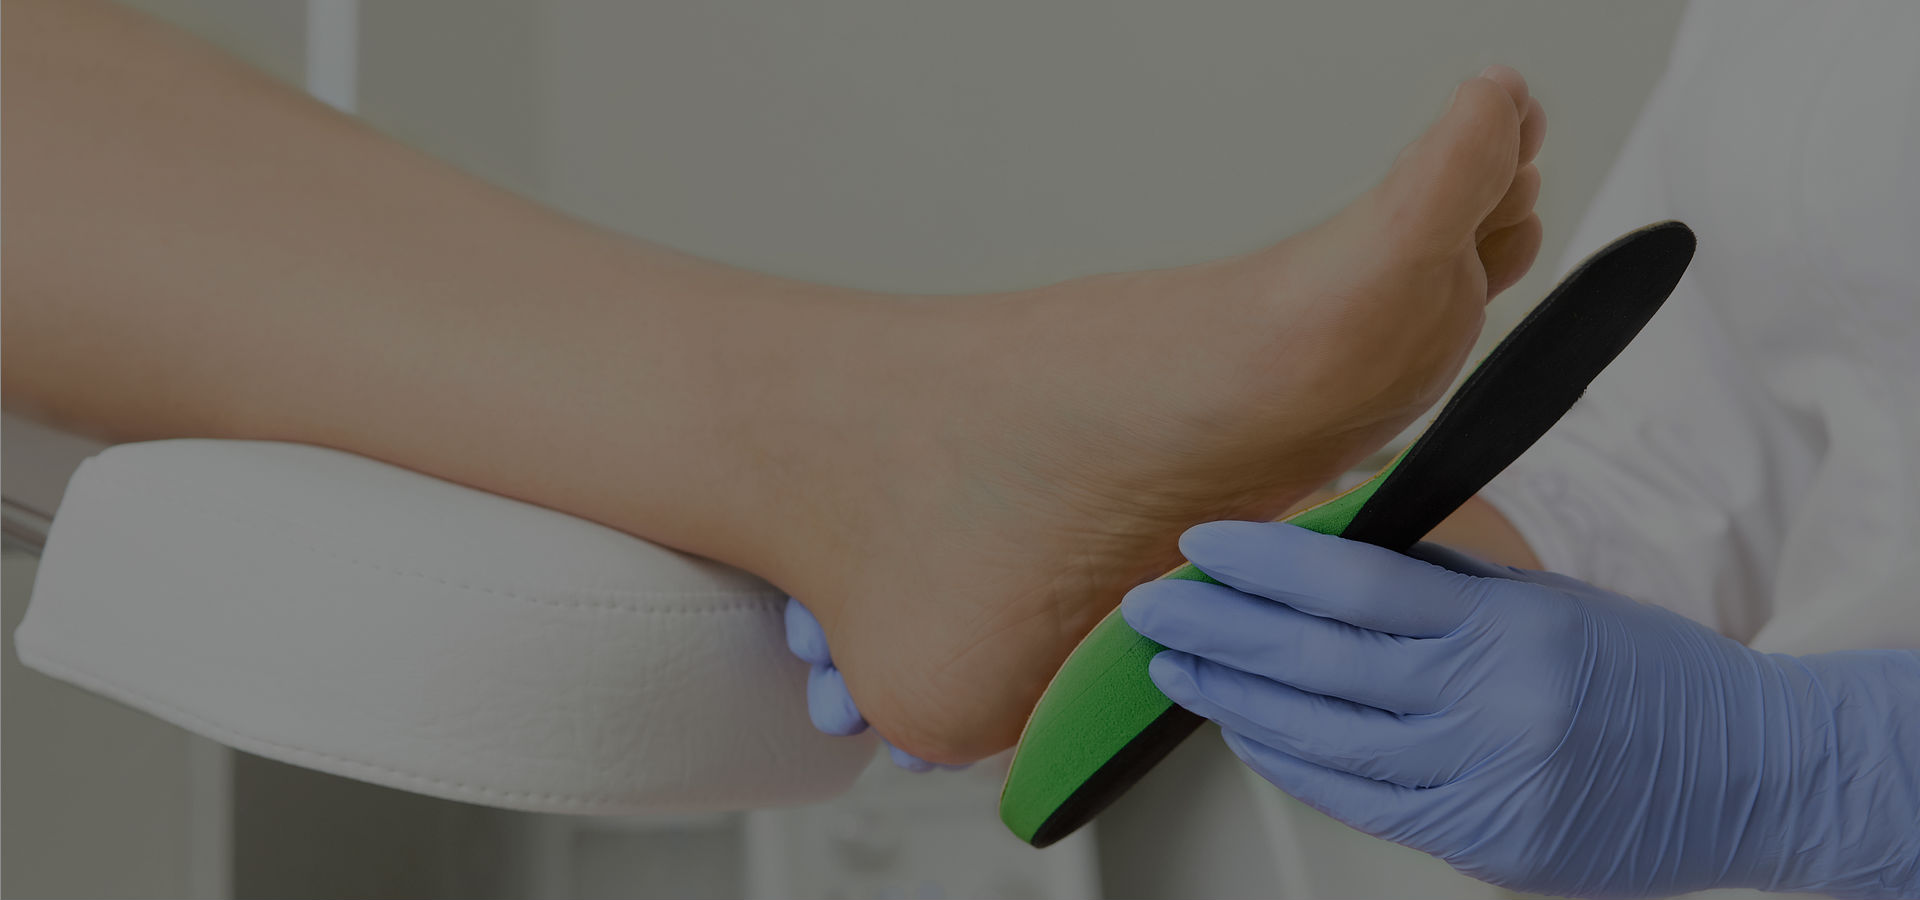 Professional Podiatry, Chiropody and Orthotic Services